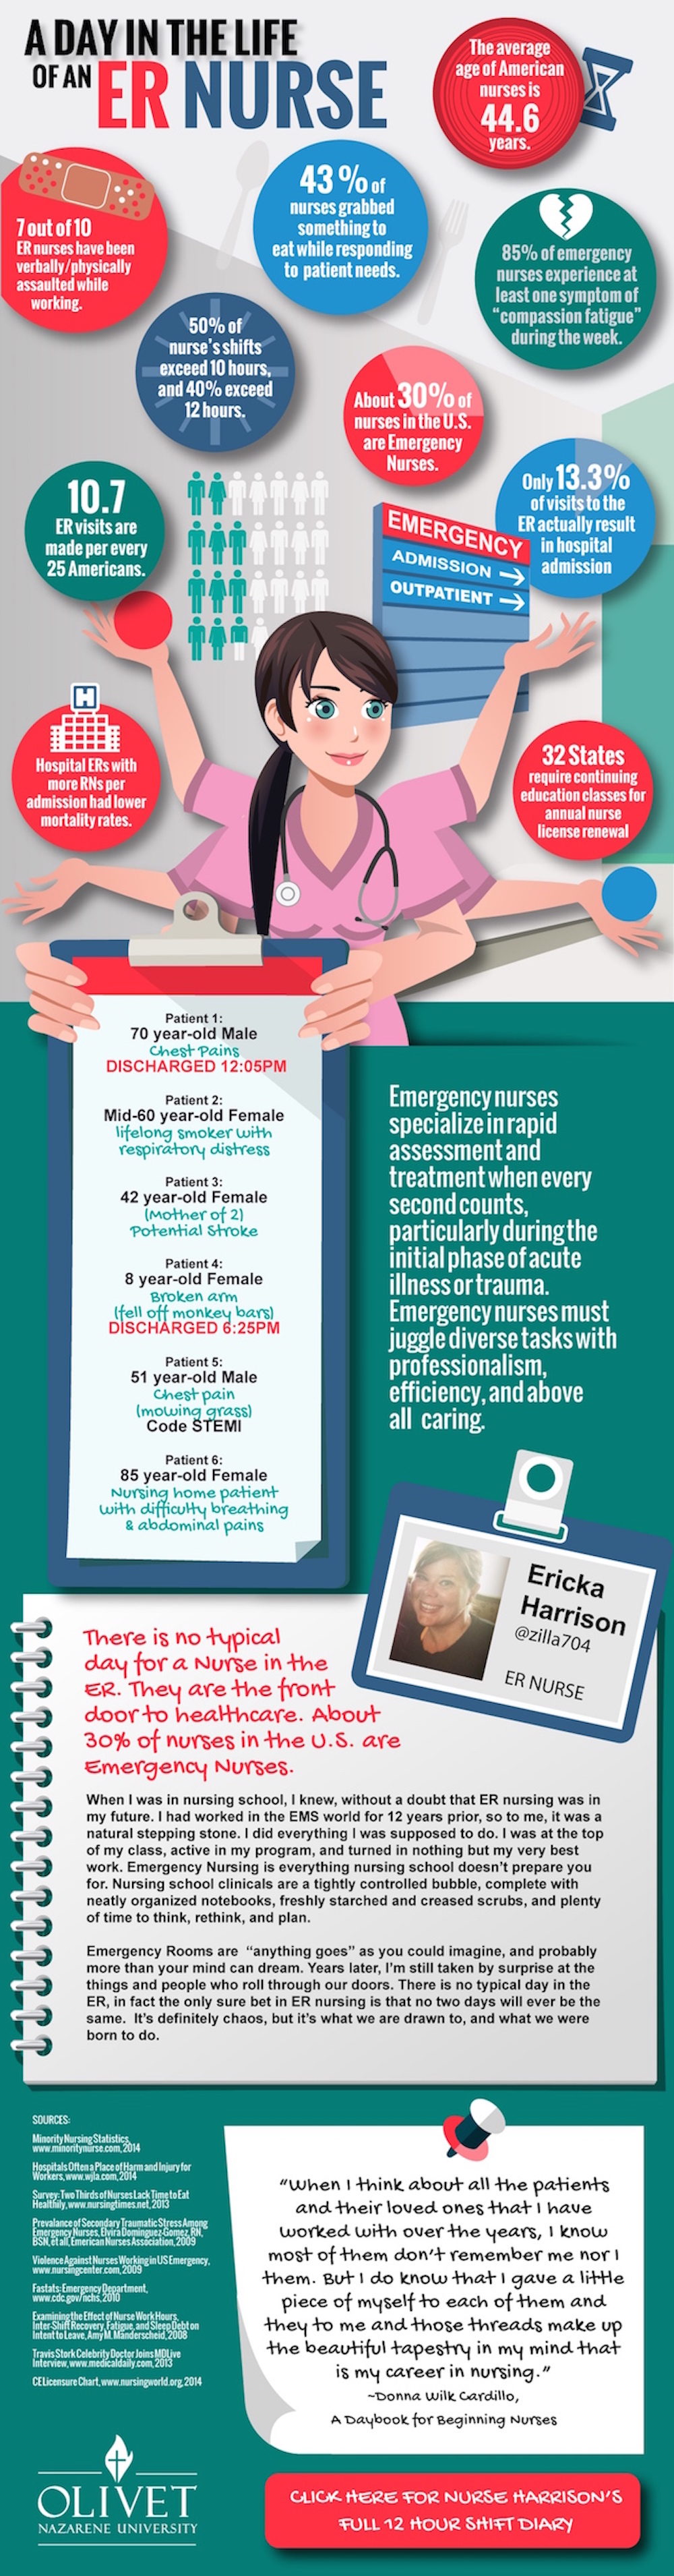 A Day in the Life of an ER Nurse Infographic | eMedCert